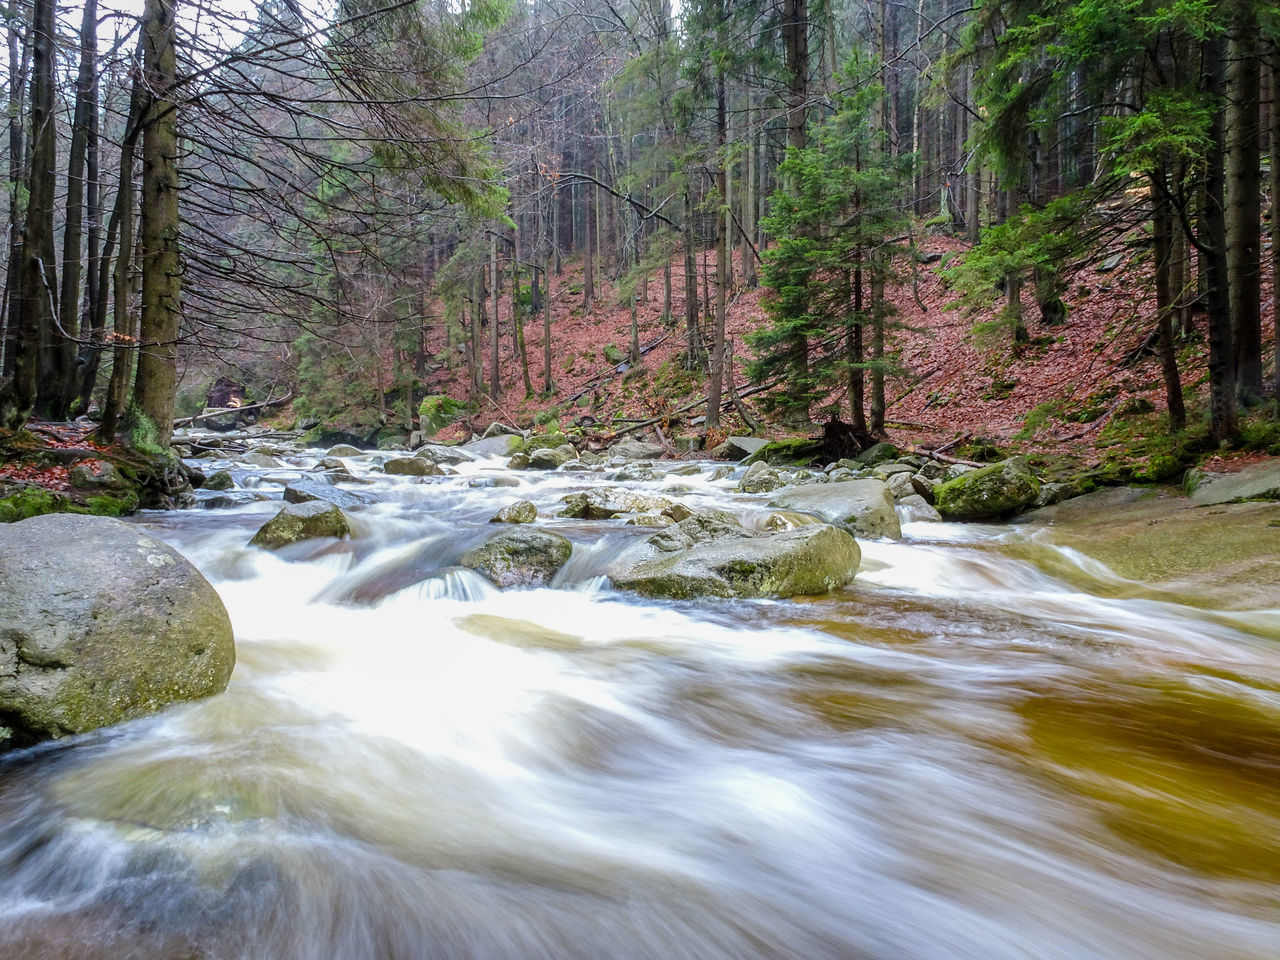 flowing water, nature, forest, tree, beauty in nature, scenics, no people, water, day, waterfall, outdoors, river, blurred motion, tranquil scene, long exposure, tranquility, motion